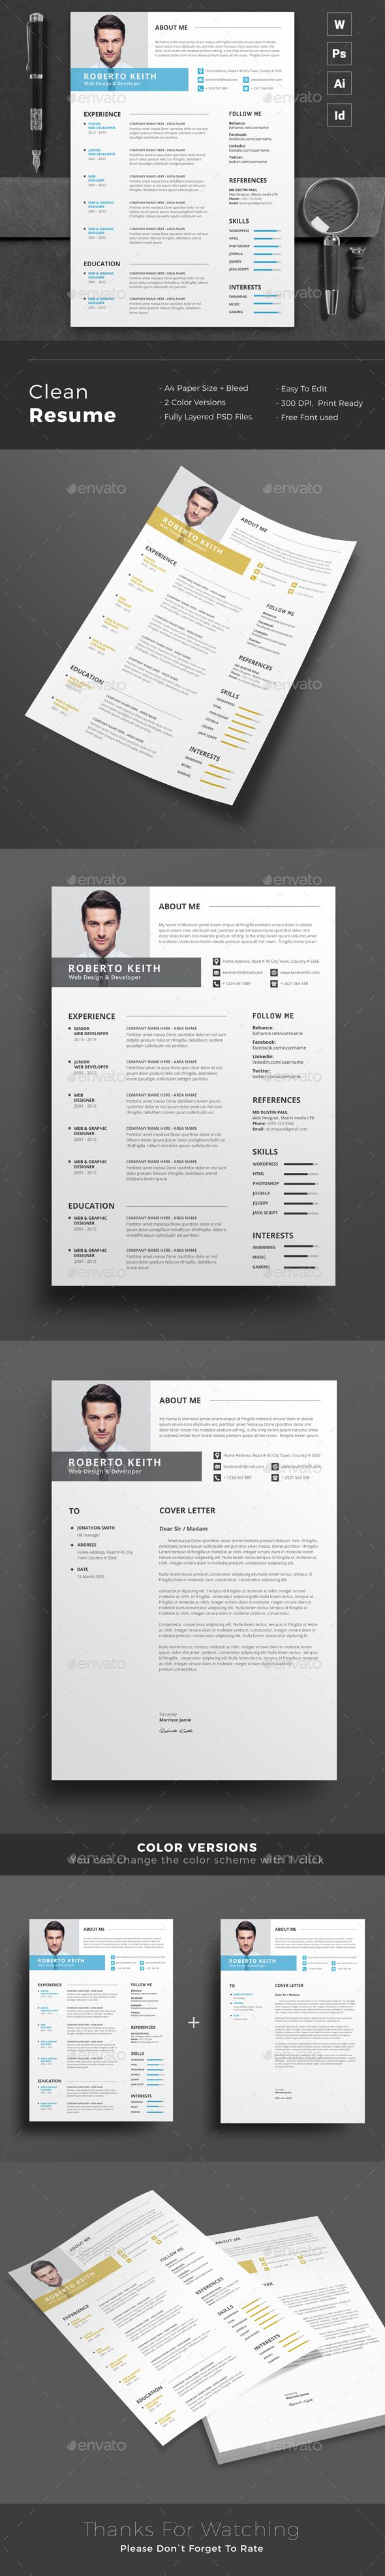 Resume Word Template / CV Template with super clean and modern look. Clean Resume Template page designs are easy to use and customize, so you can quickly tailor-make your job resume for any opportunity and help you to get your job. This Infographic Resume CV Template is made in Adobe Photoshop, Illustrator, Indesign format and very popular word processor, MS Word aka Microsoft Word. #cv #resume #template